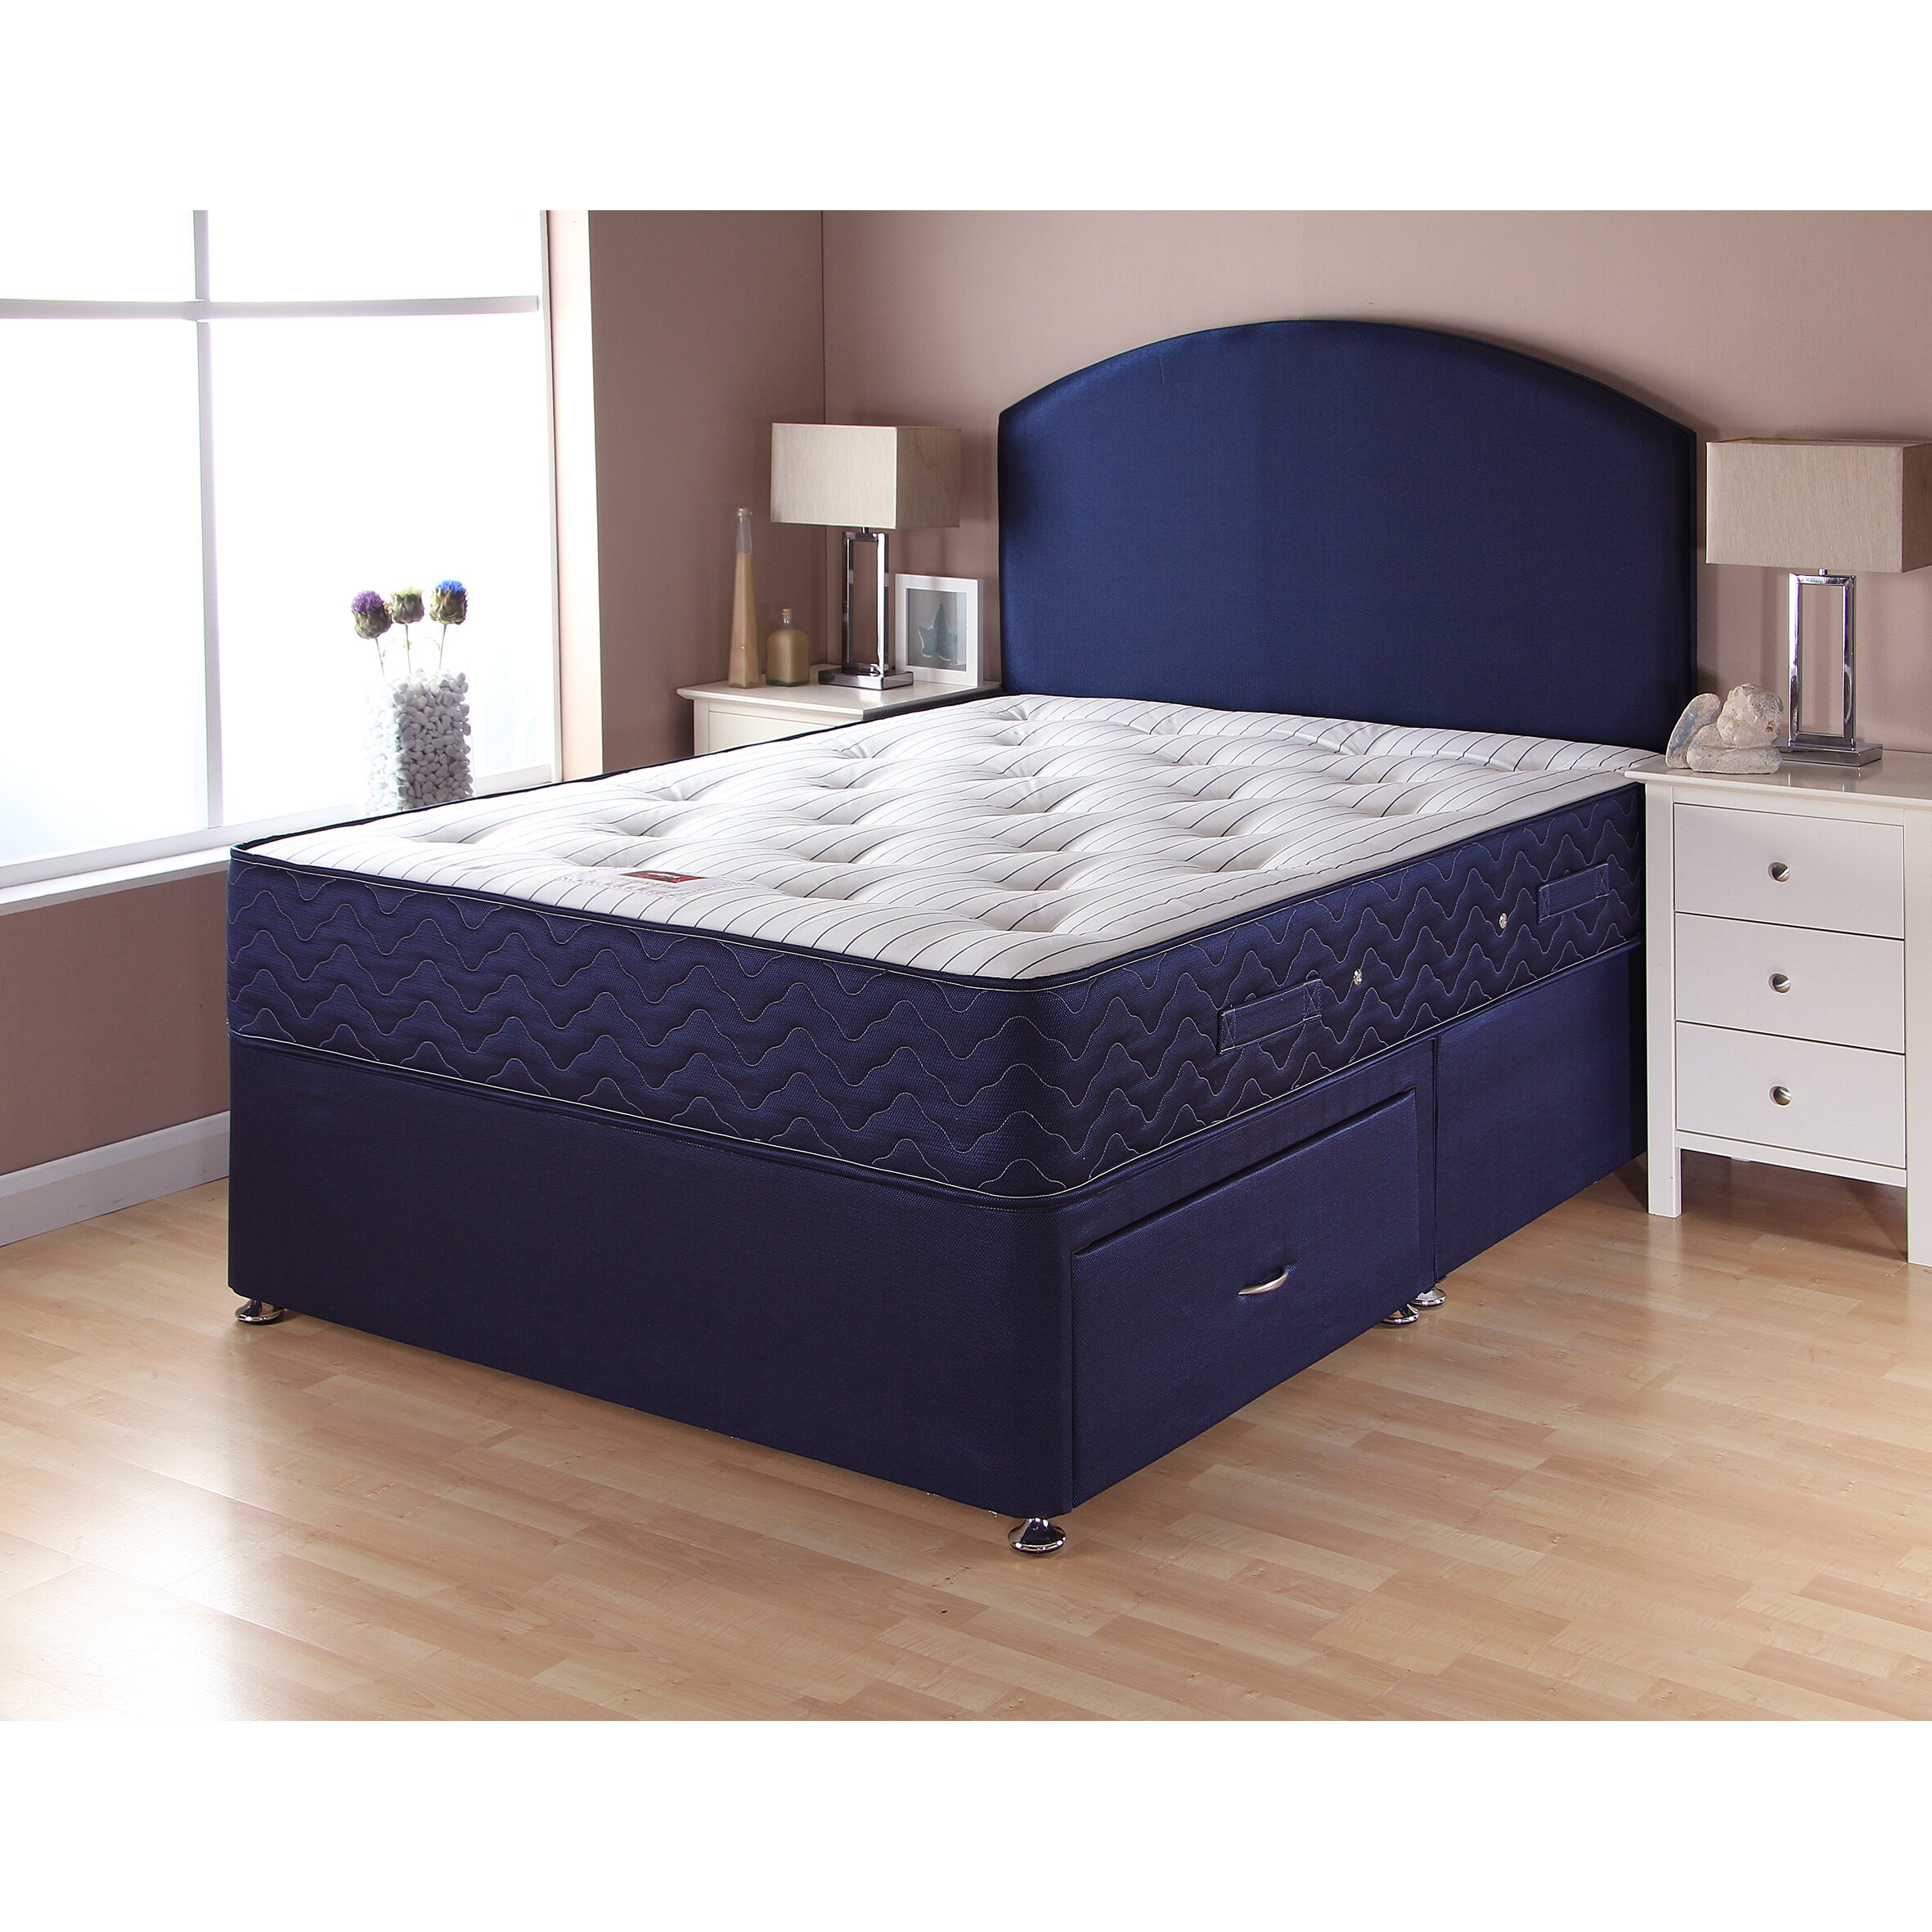 Airsprung beds catalina pocket sprung divan bed wayfair uk for 4 drawer divan bed sale